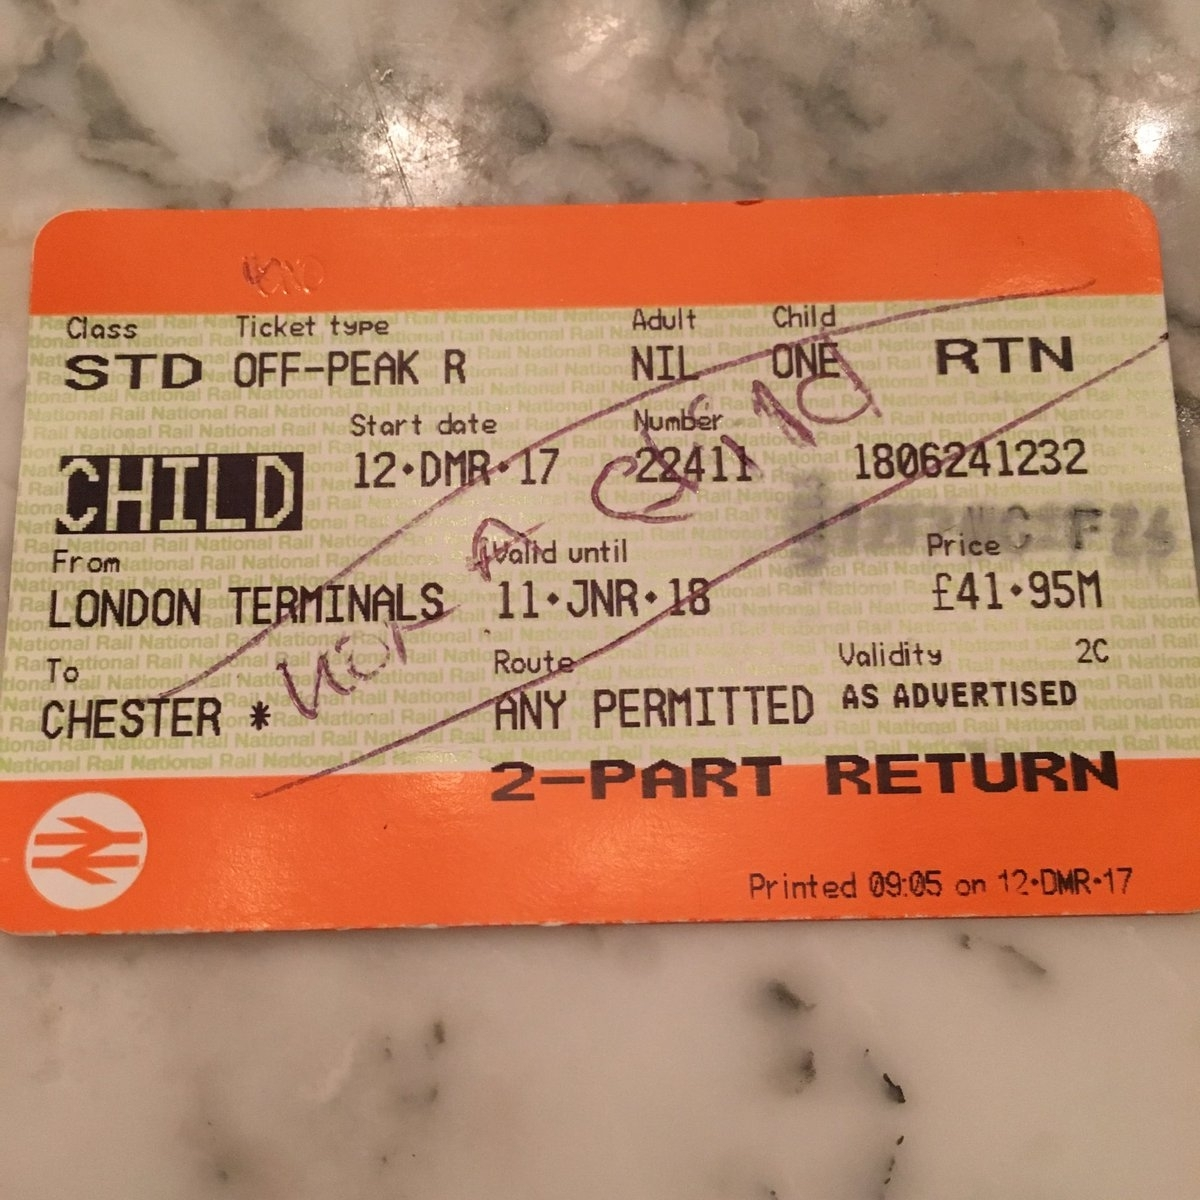 'Not a child' train ticket